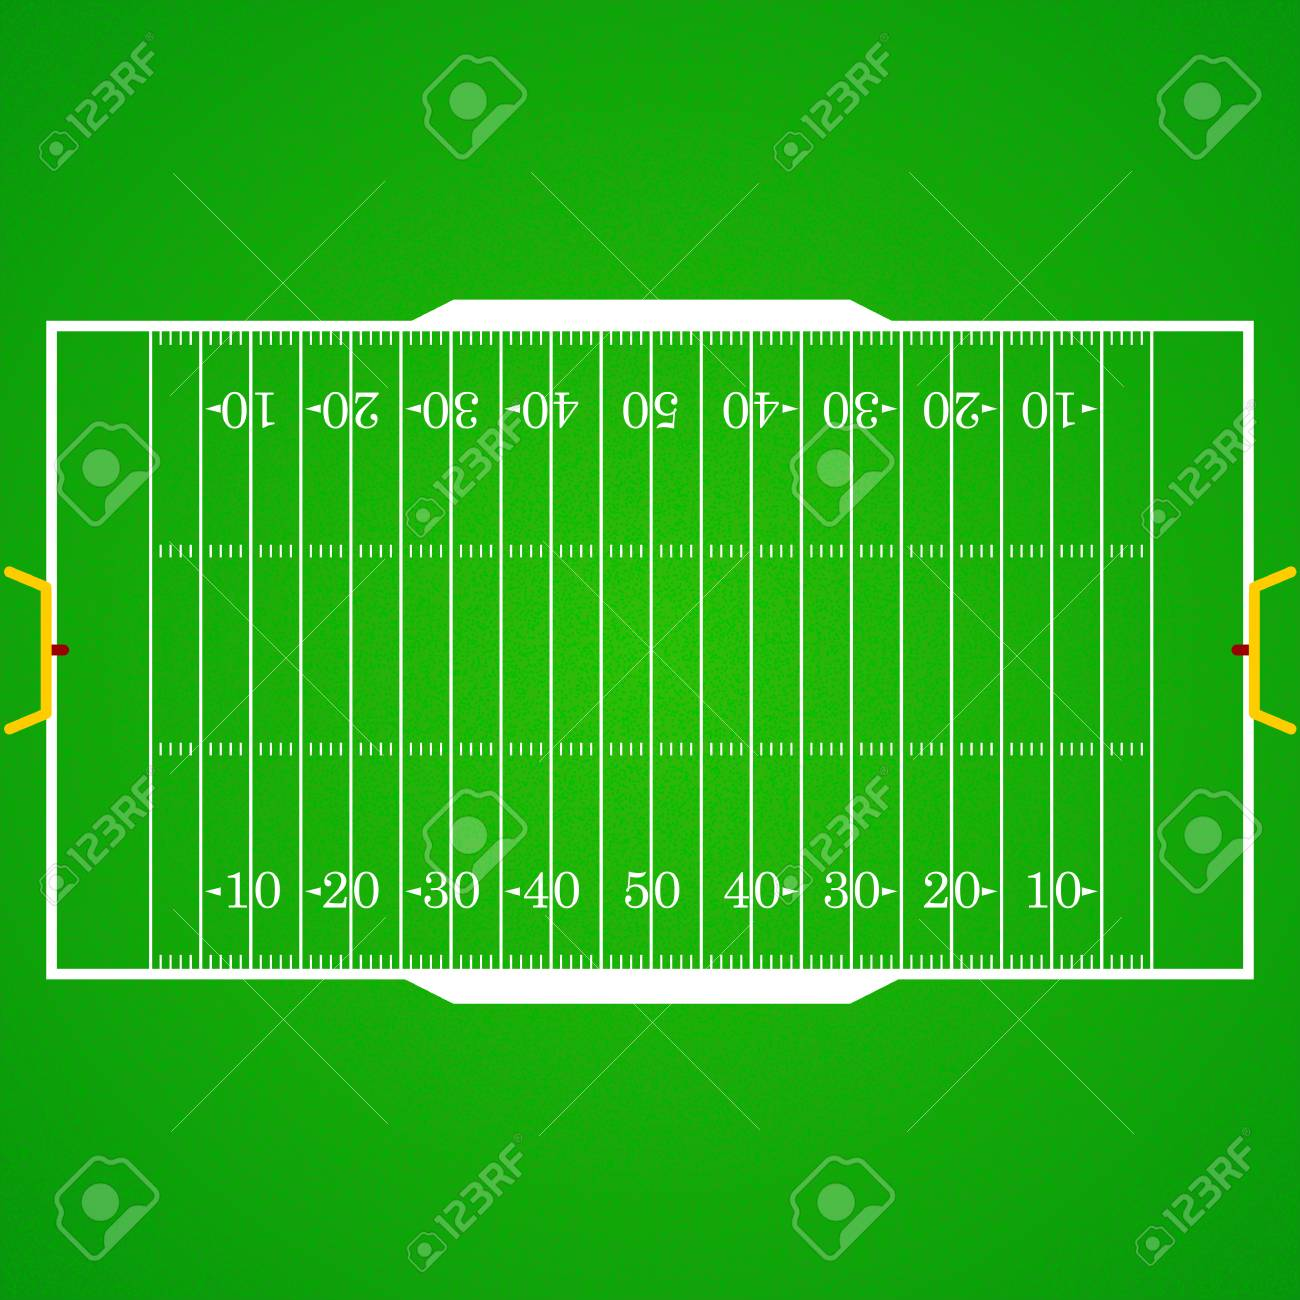 A Realistic Aerial View Of An Official American Football Field